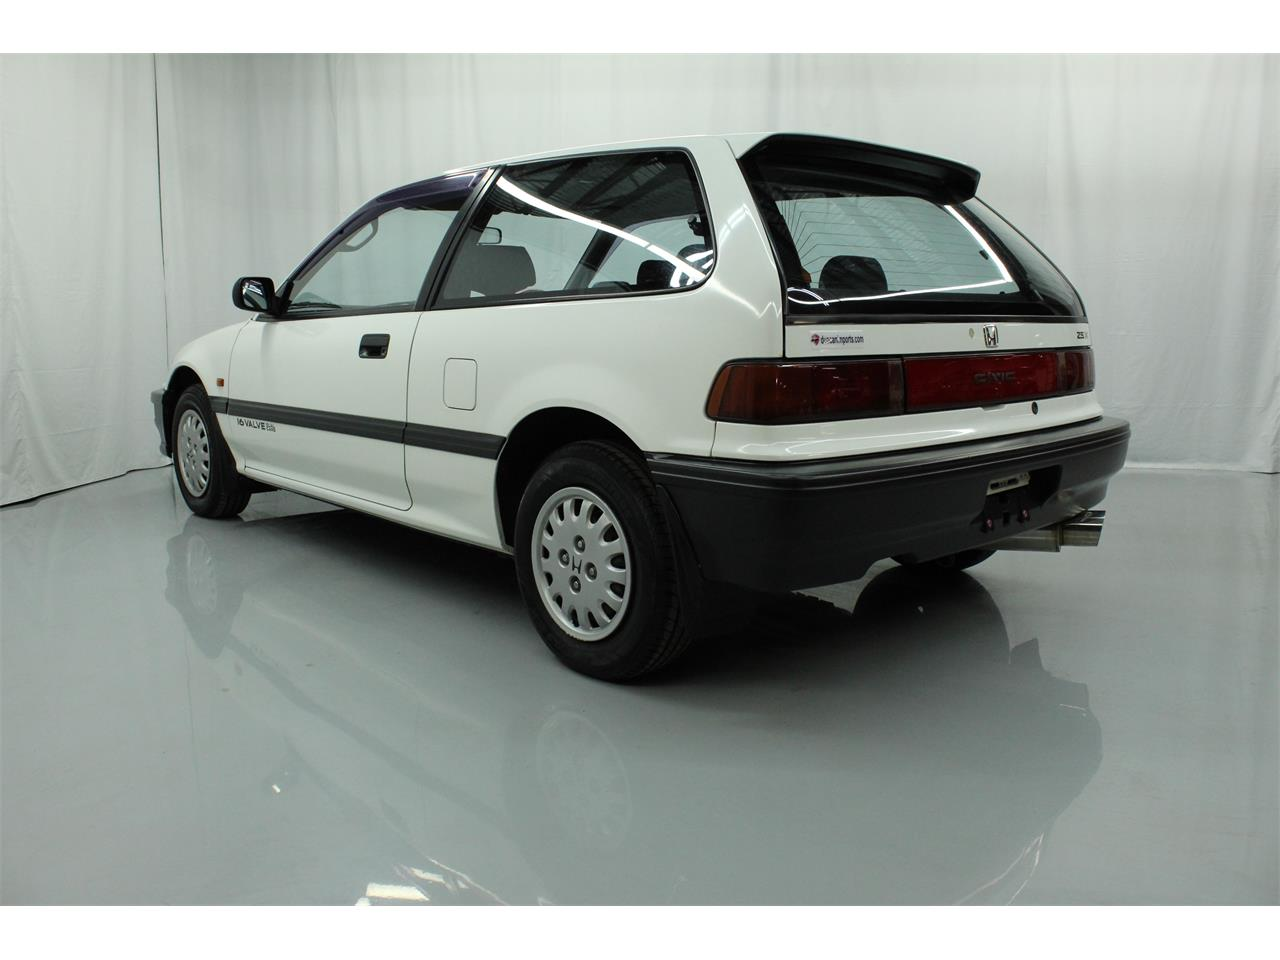 Large Picture of 1990 Civic located in Christiansburg Virginia - $10,599.00 Offered by Duncan Imports & Classic Cars - PPNF